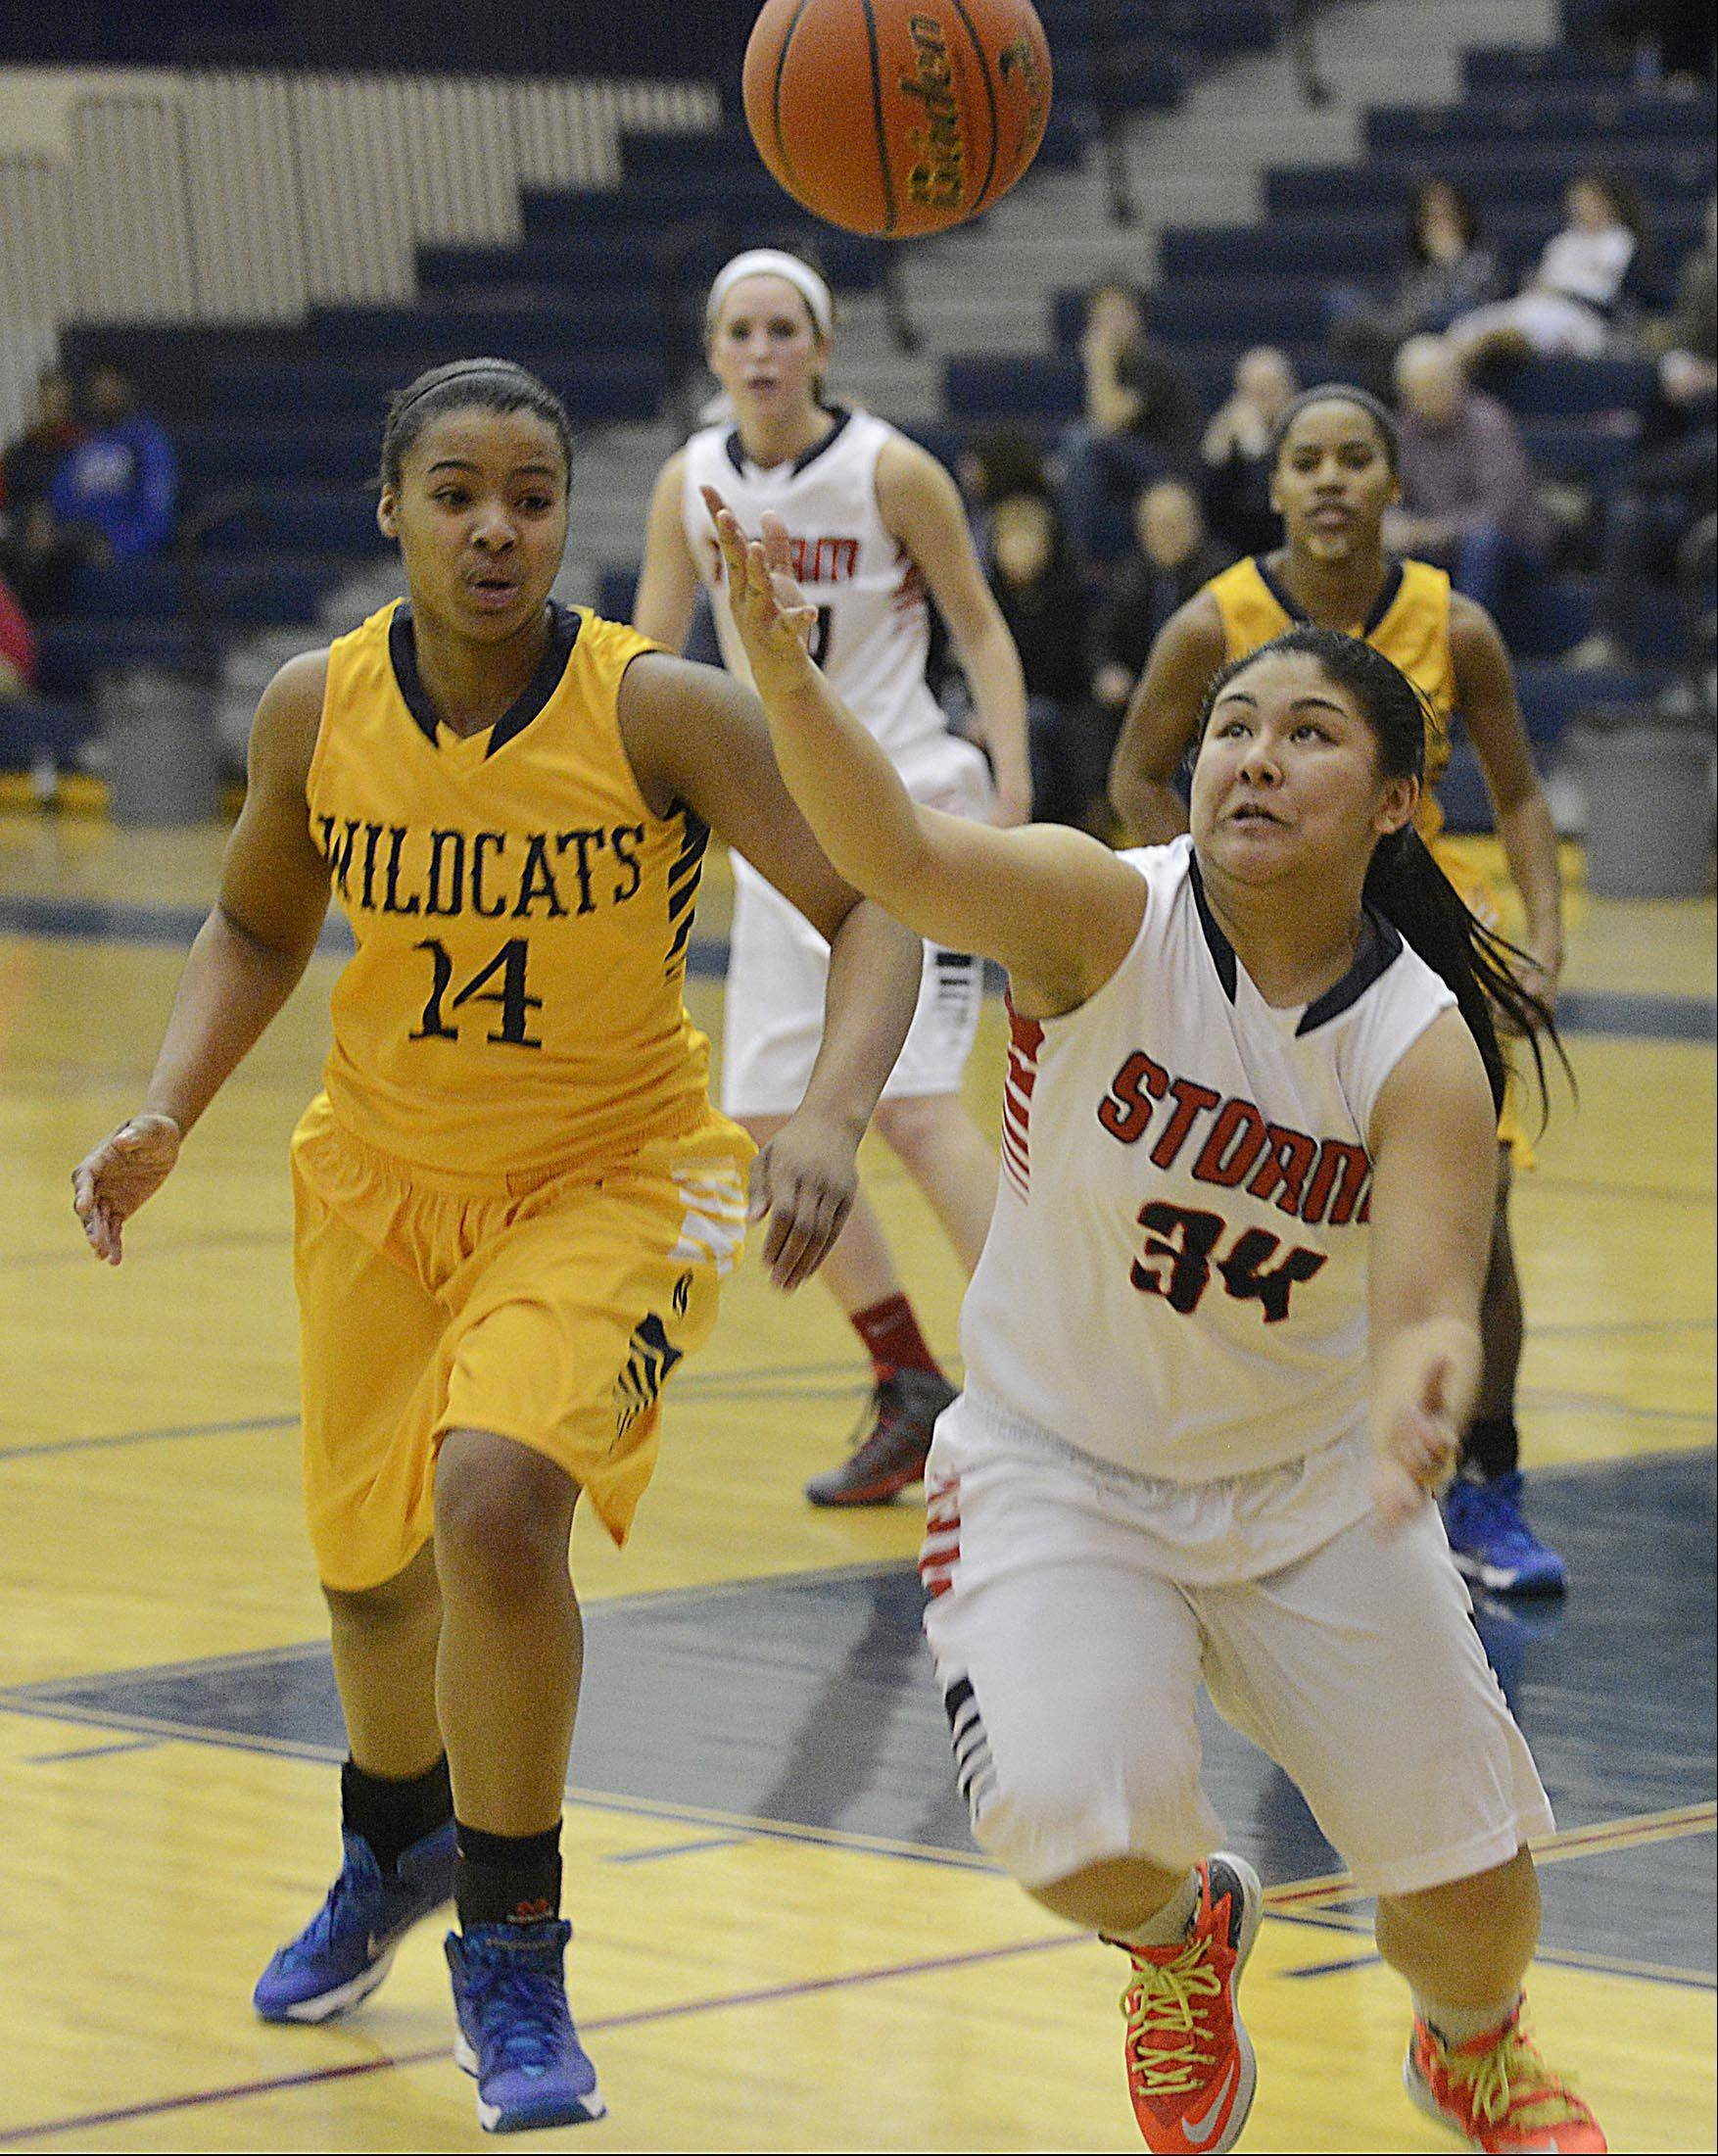 Images from the Neuqua Valley at South Elgin girls basketball game Monday, February 3, 2014 in South Elgin.